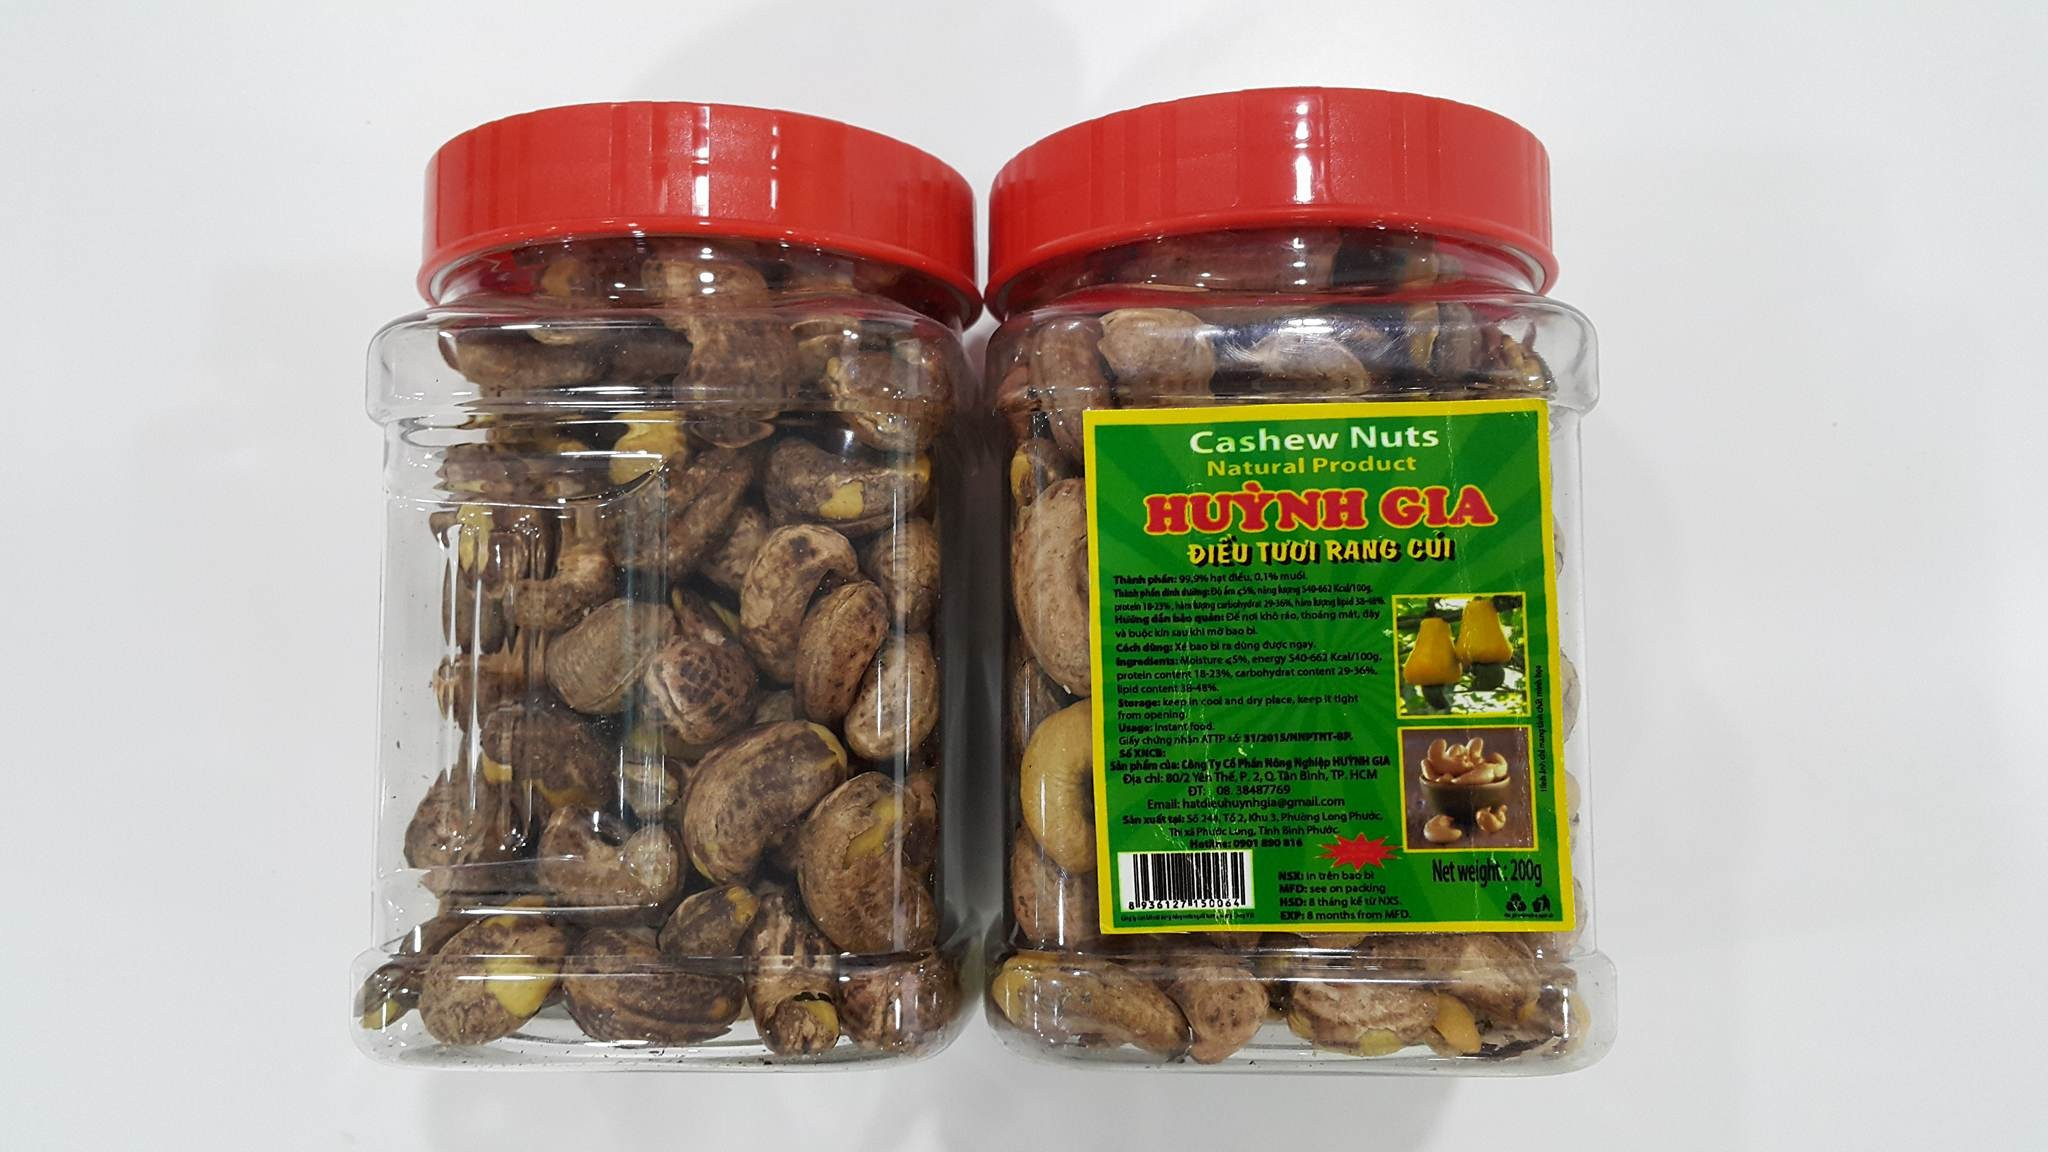 Salted Cashew Nuts Price